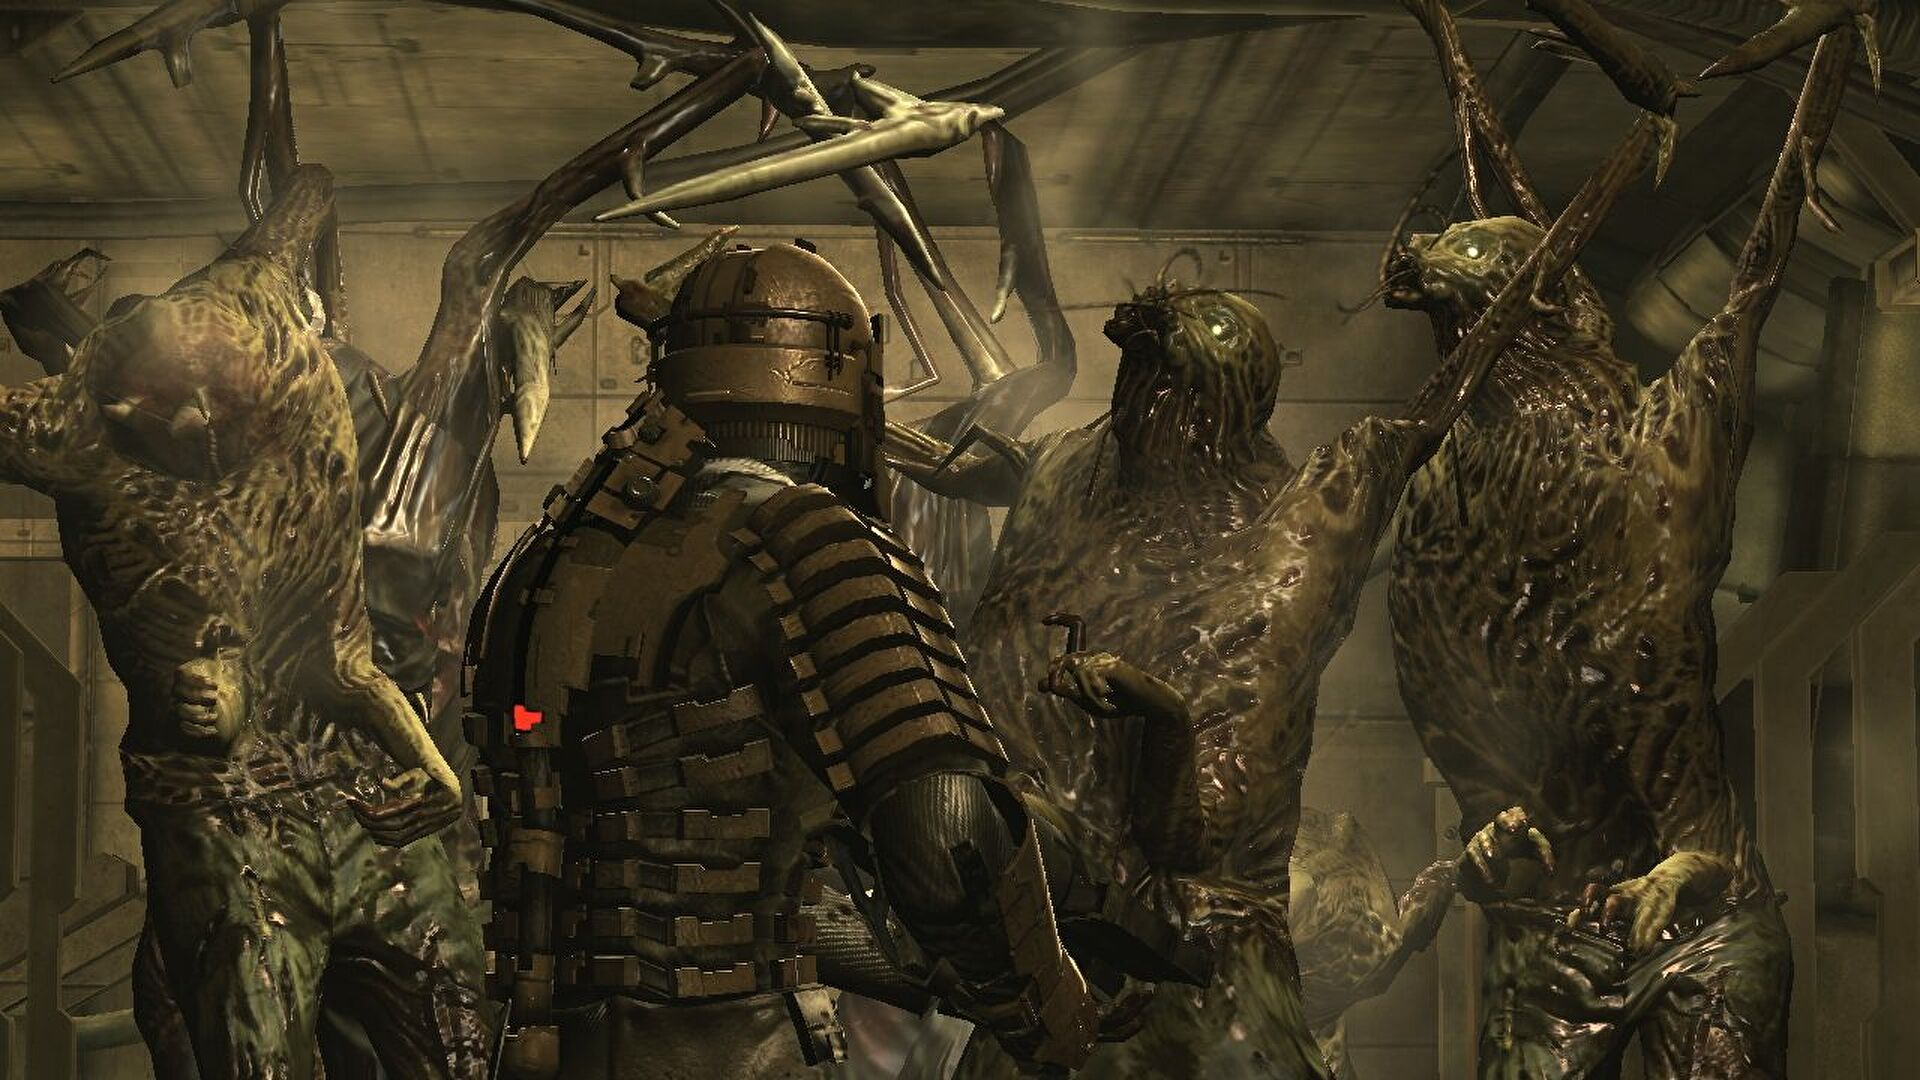 In Dead Space, the dismemberment will be more gruesome and Isaac will speak this time.